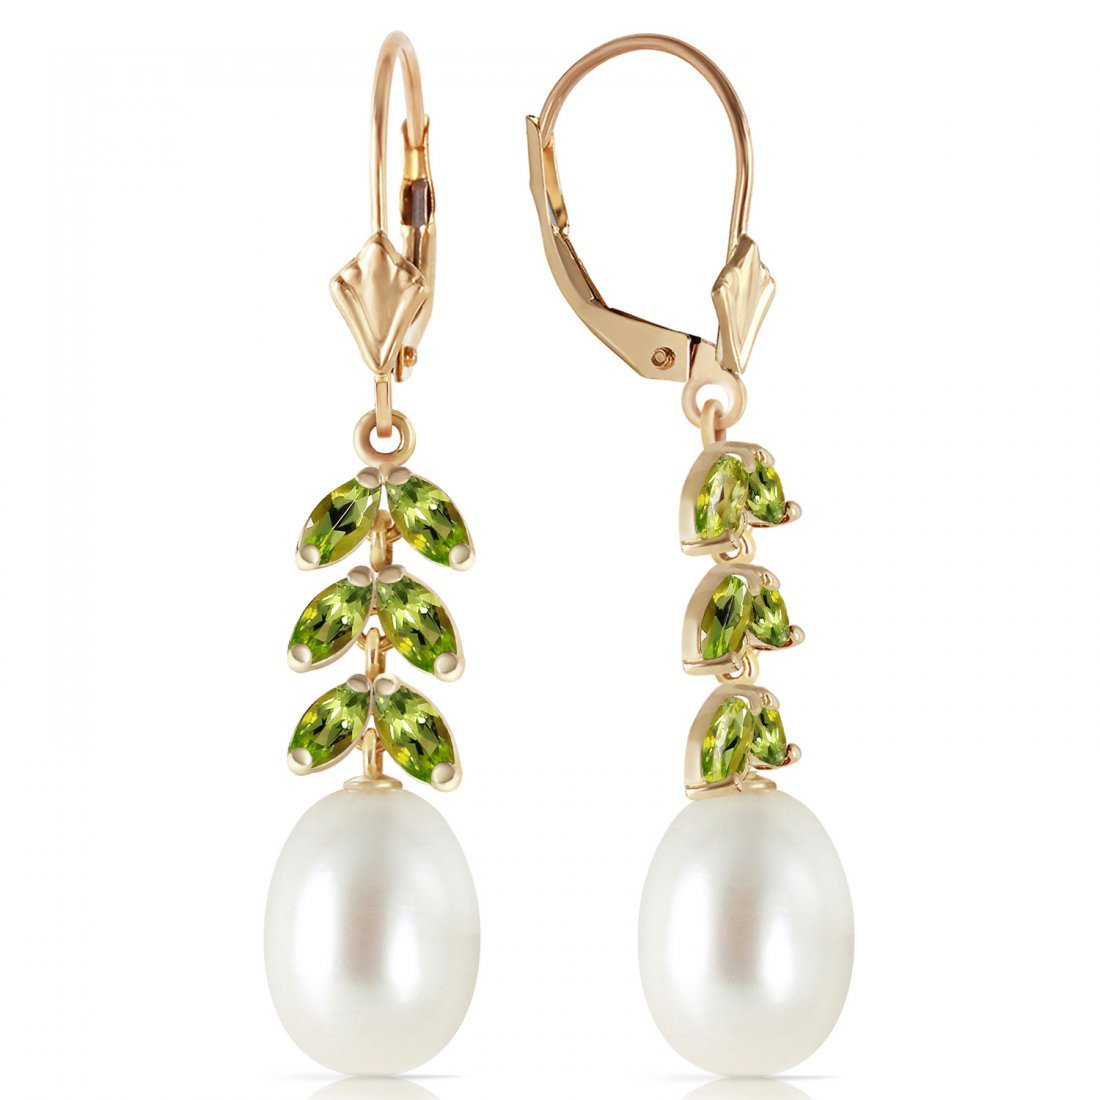 Genuine 9.2 ctw Pearl & Peridot Earrings Jewelry 14KT